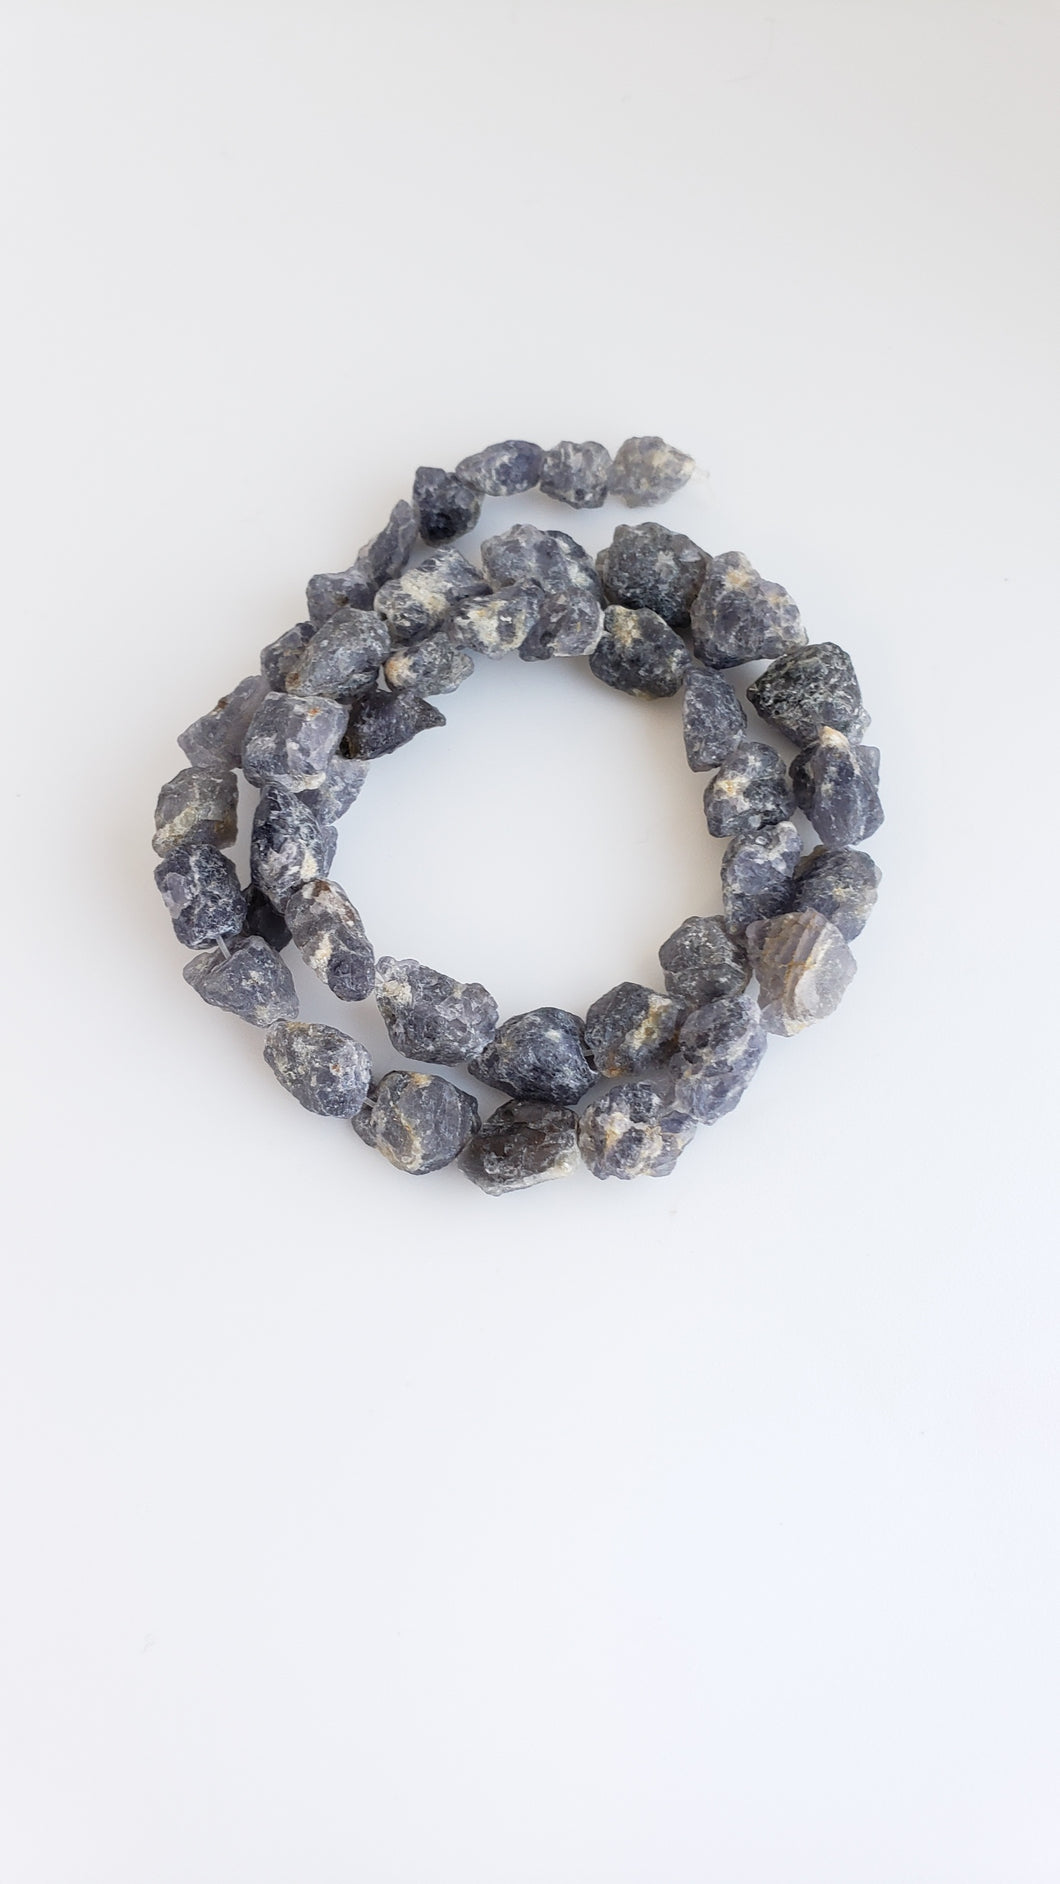 Iolite Rough Bead Strand Irregular nugget